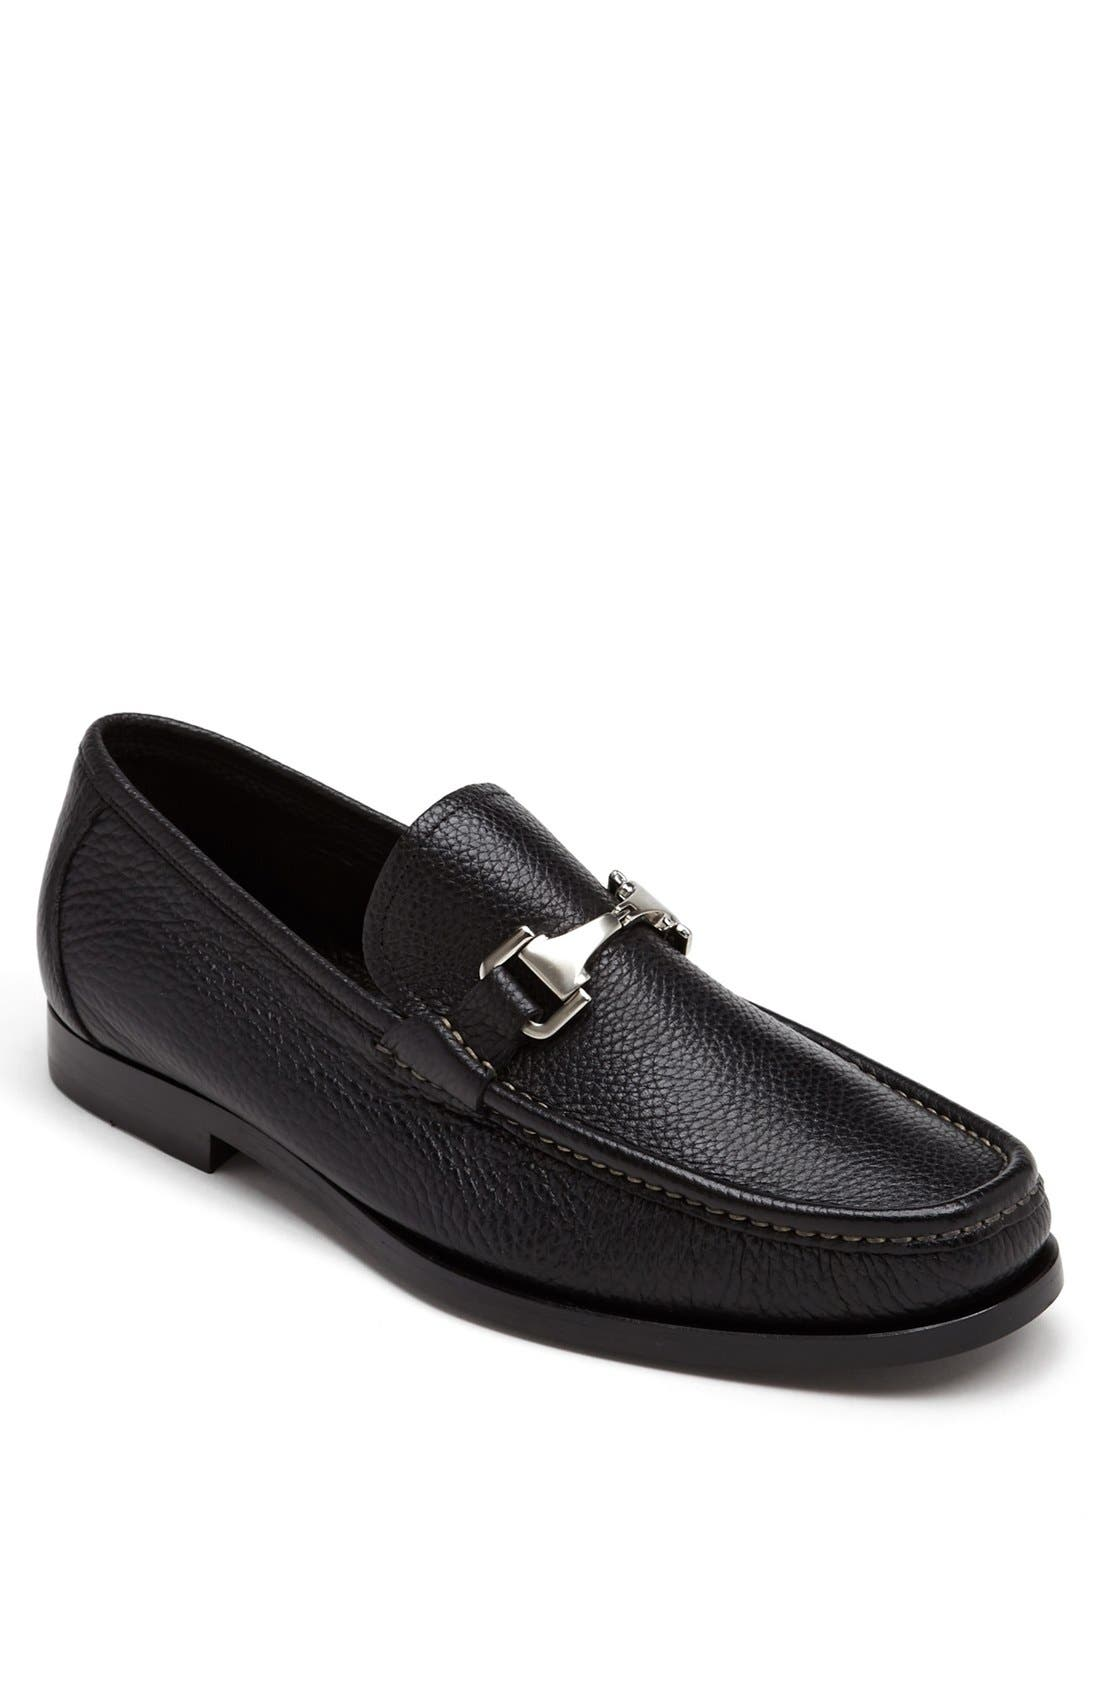 'Firenze' Bit Loafer,                         Main,                         color, 001